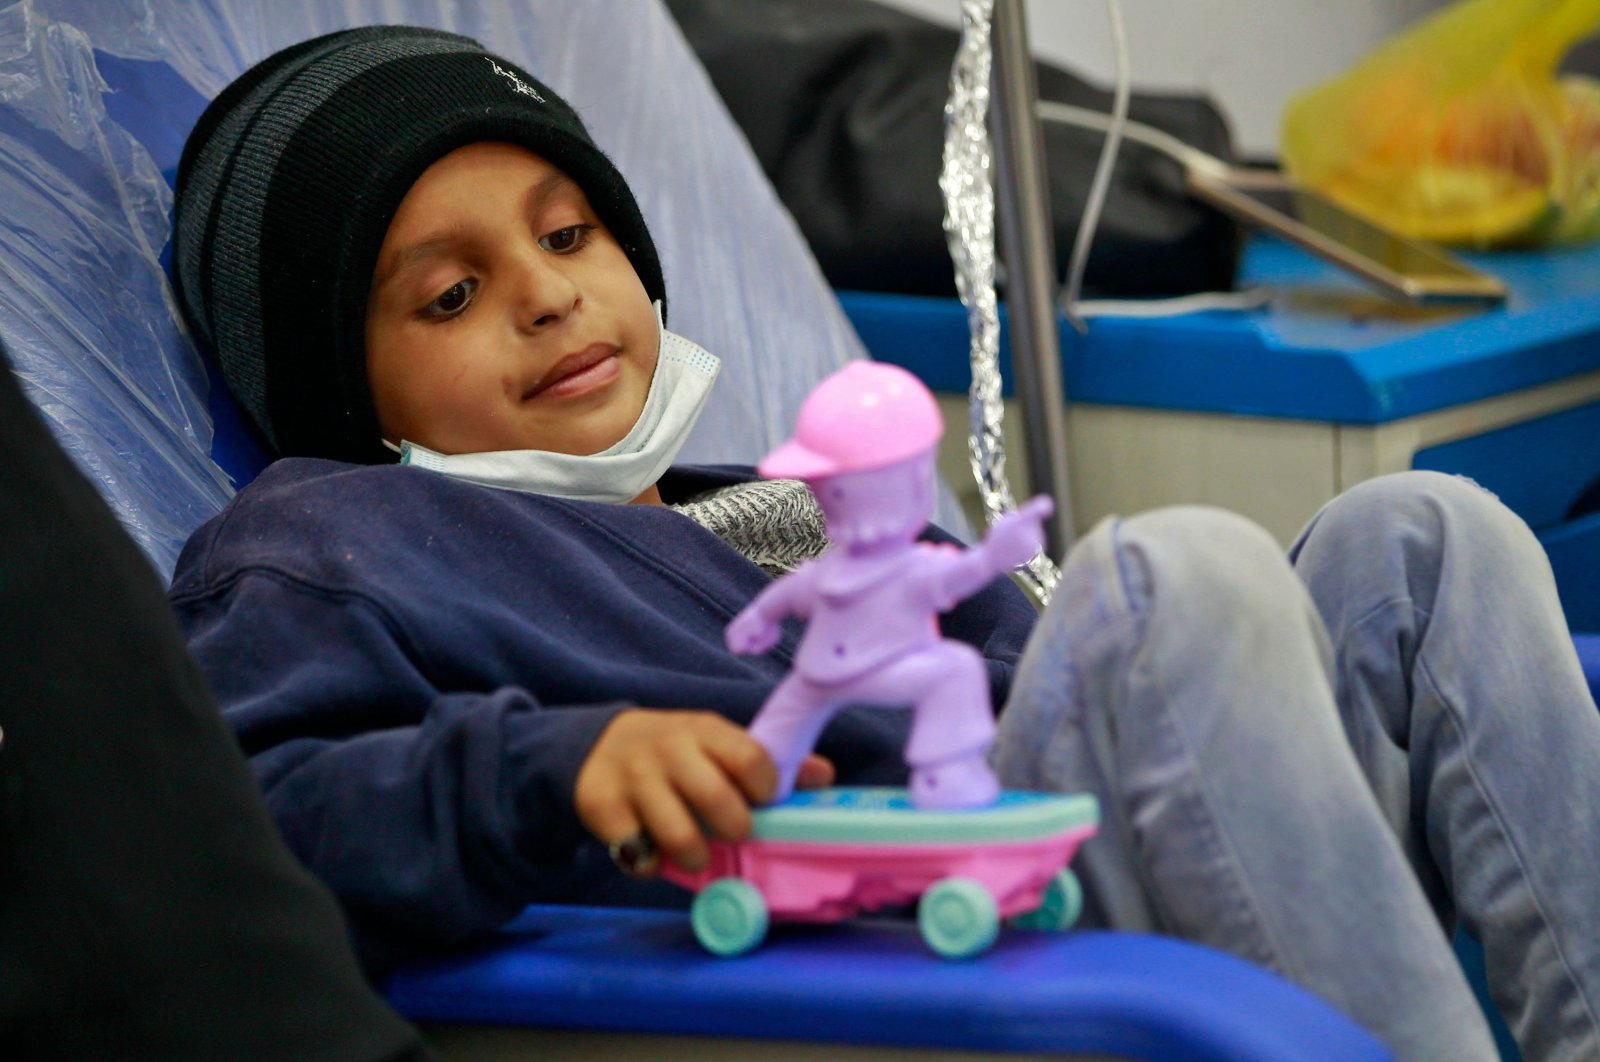 A child suffering from blood cancer, or leukemia, receives treatment at an oncology ward of a hospital in the Yemeni capital Sanaa, on World Cancer Day, Feb. 4, 2021. (AFP Photo)